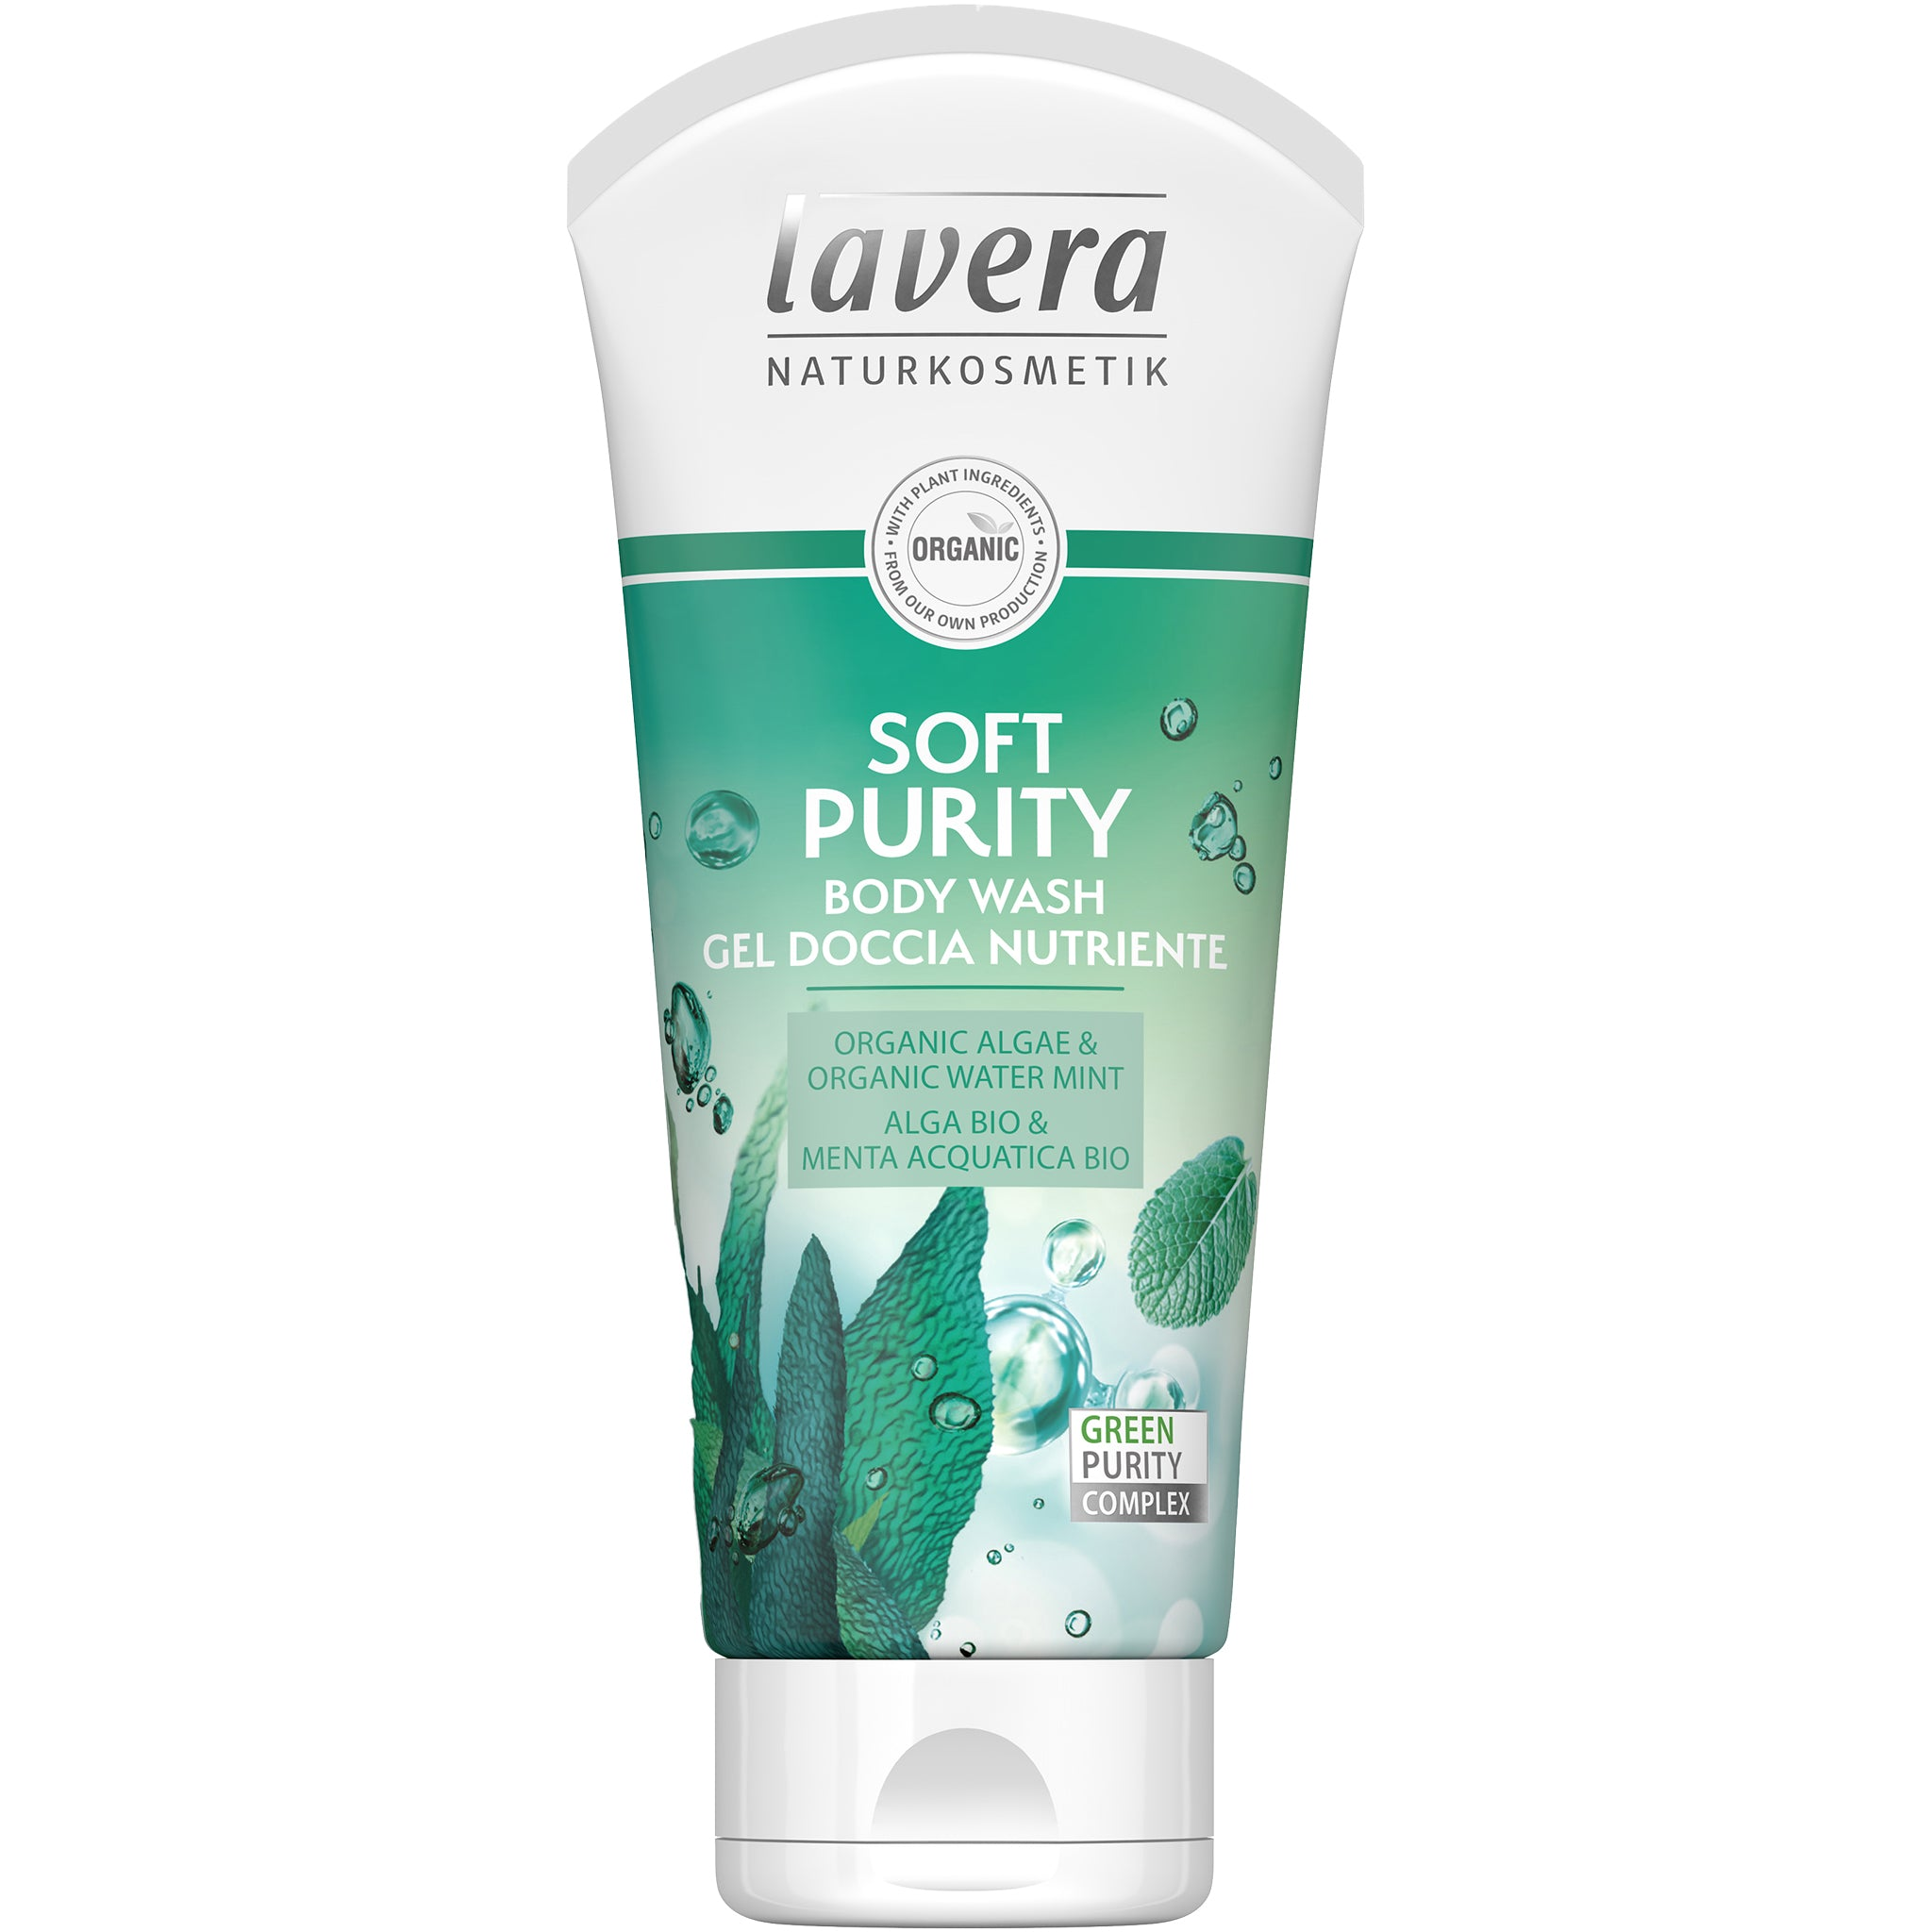 Soft Purity Body Wash - Algae & Water Mint